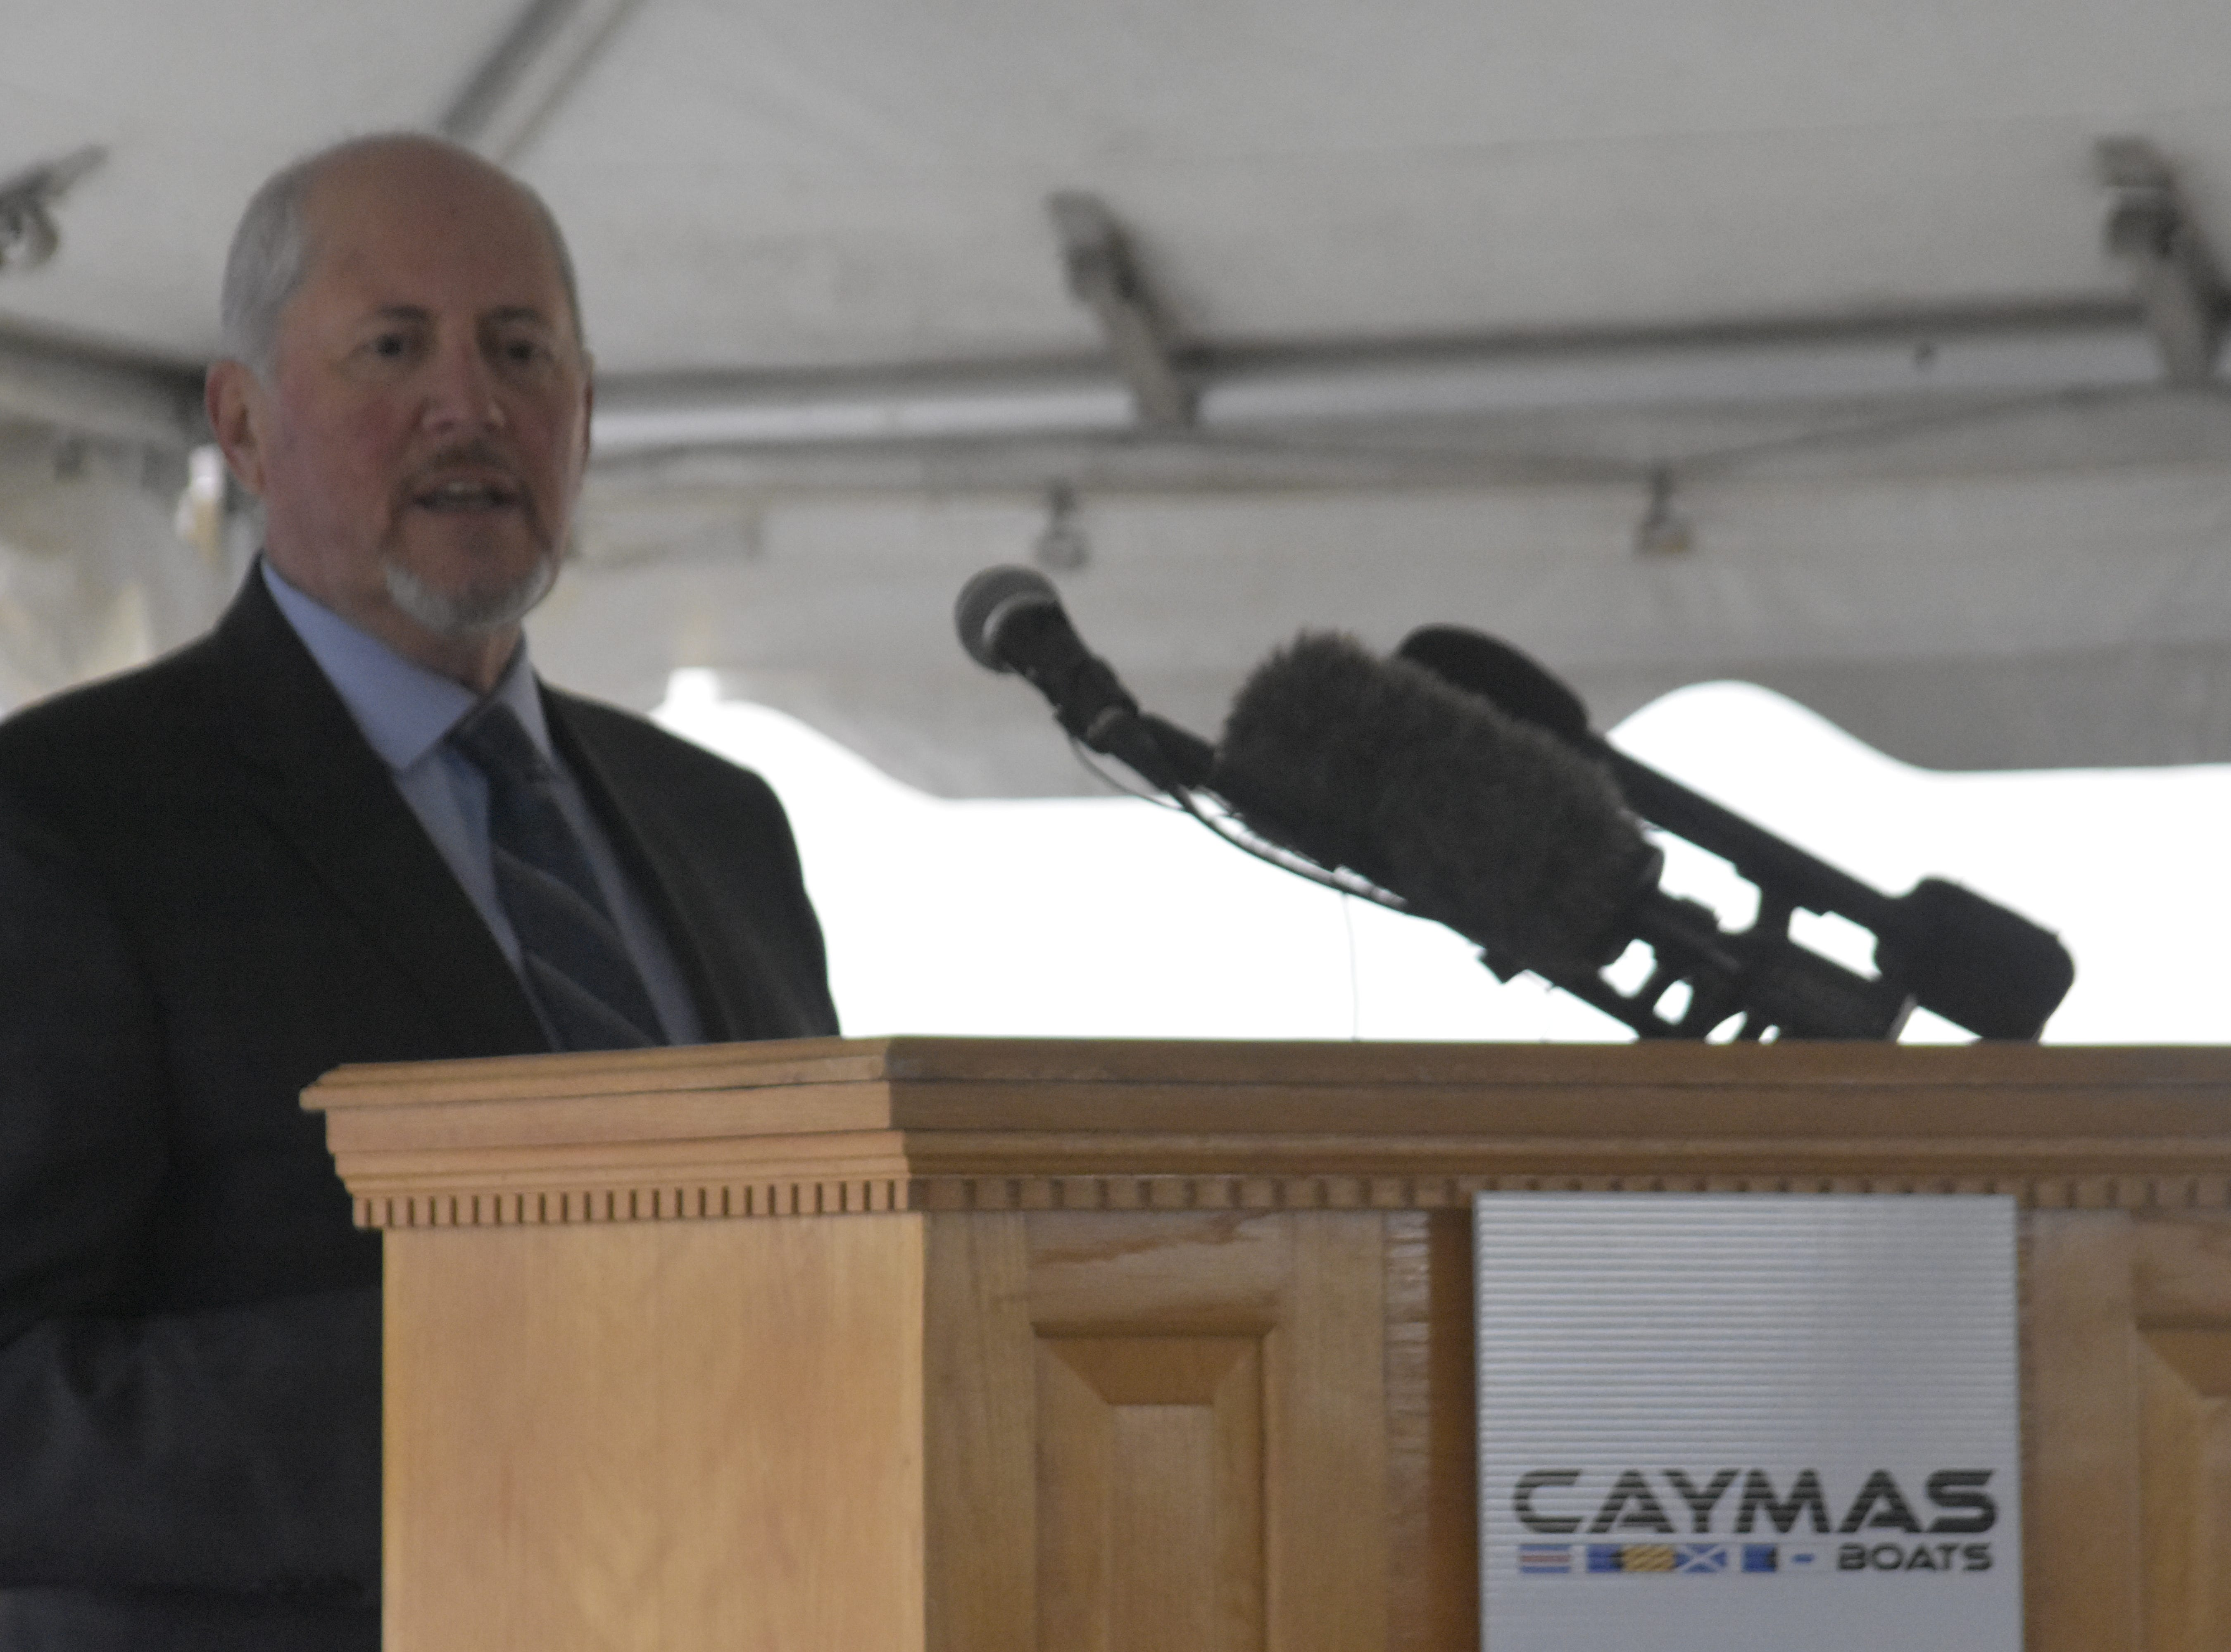 Cheatham County Economic and Community Development Director Jerome Terrell speaks at the groundbreaking for Caymas Boats on Monday, Nov. 19 in Ashland City.